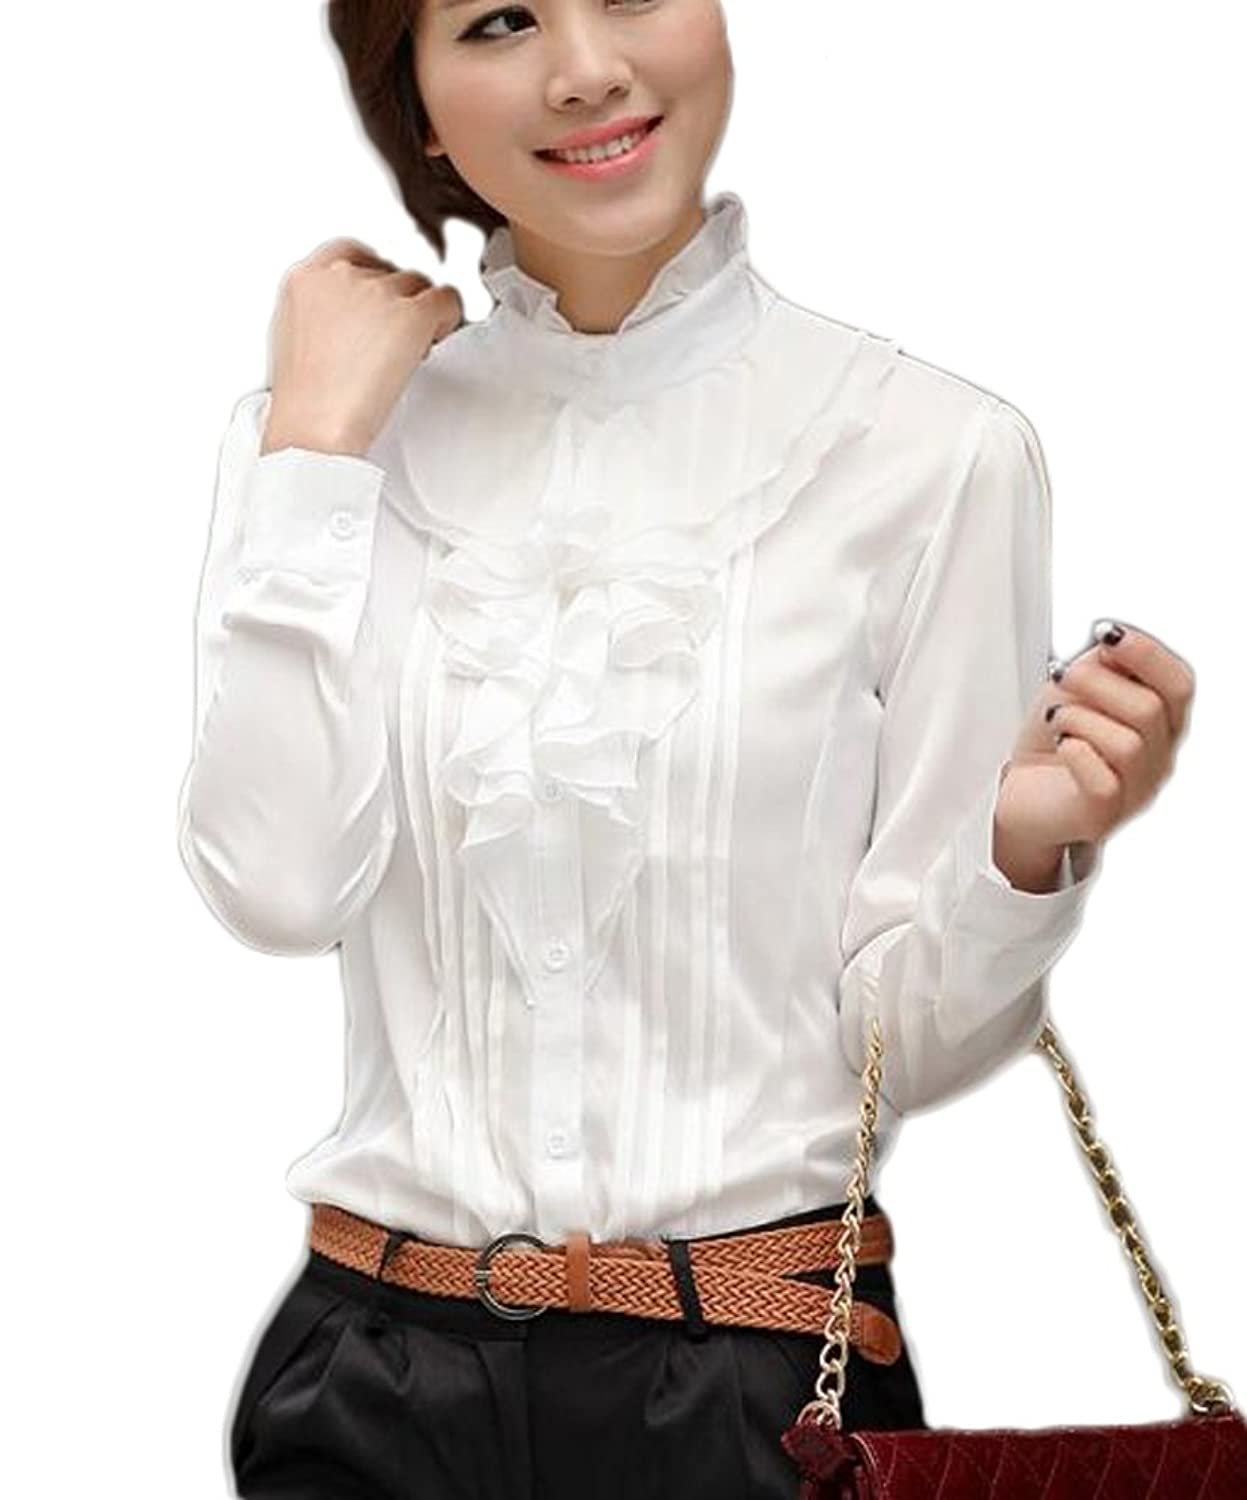 Edwardian Blouses | White & Black Lace Blouses & Sweaters Small Long Sleeve Lotus Ruffled Casual Shirt Blouse $18.67 AT vintagedancer.com